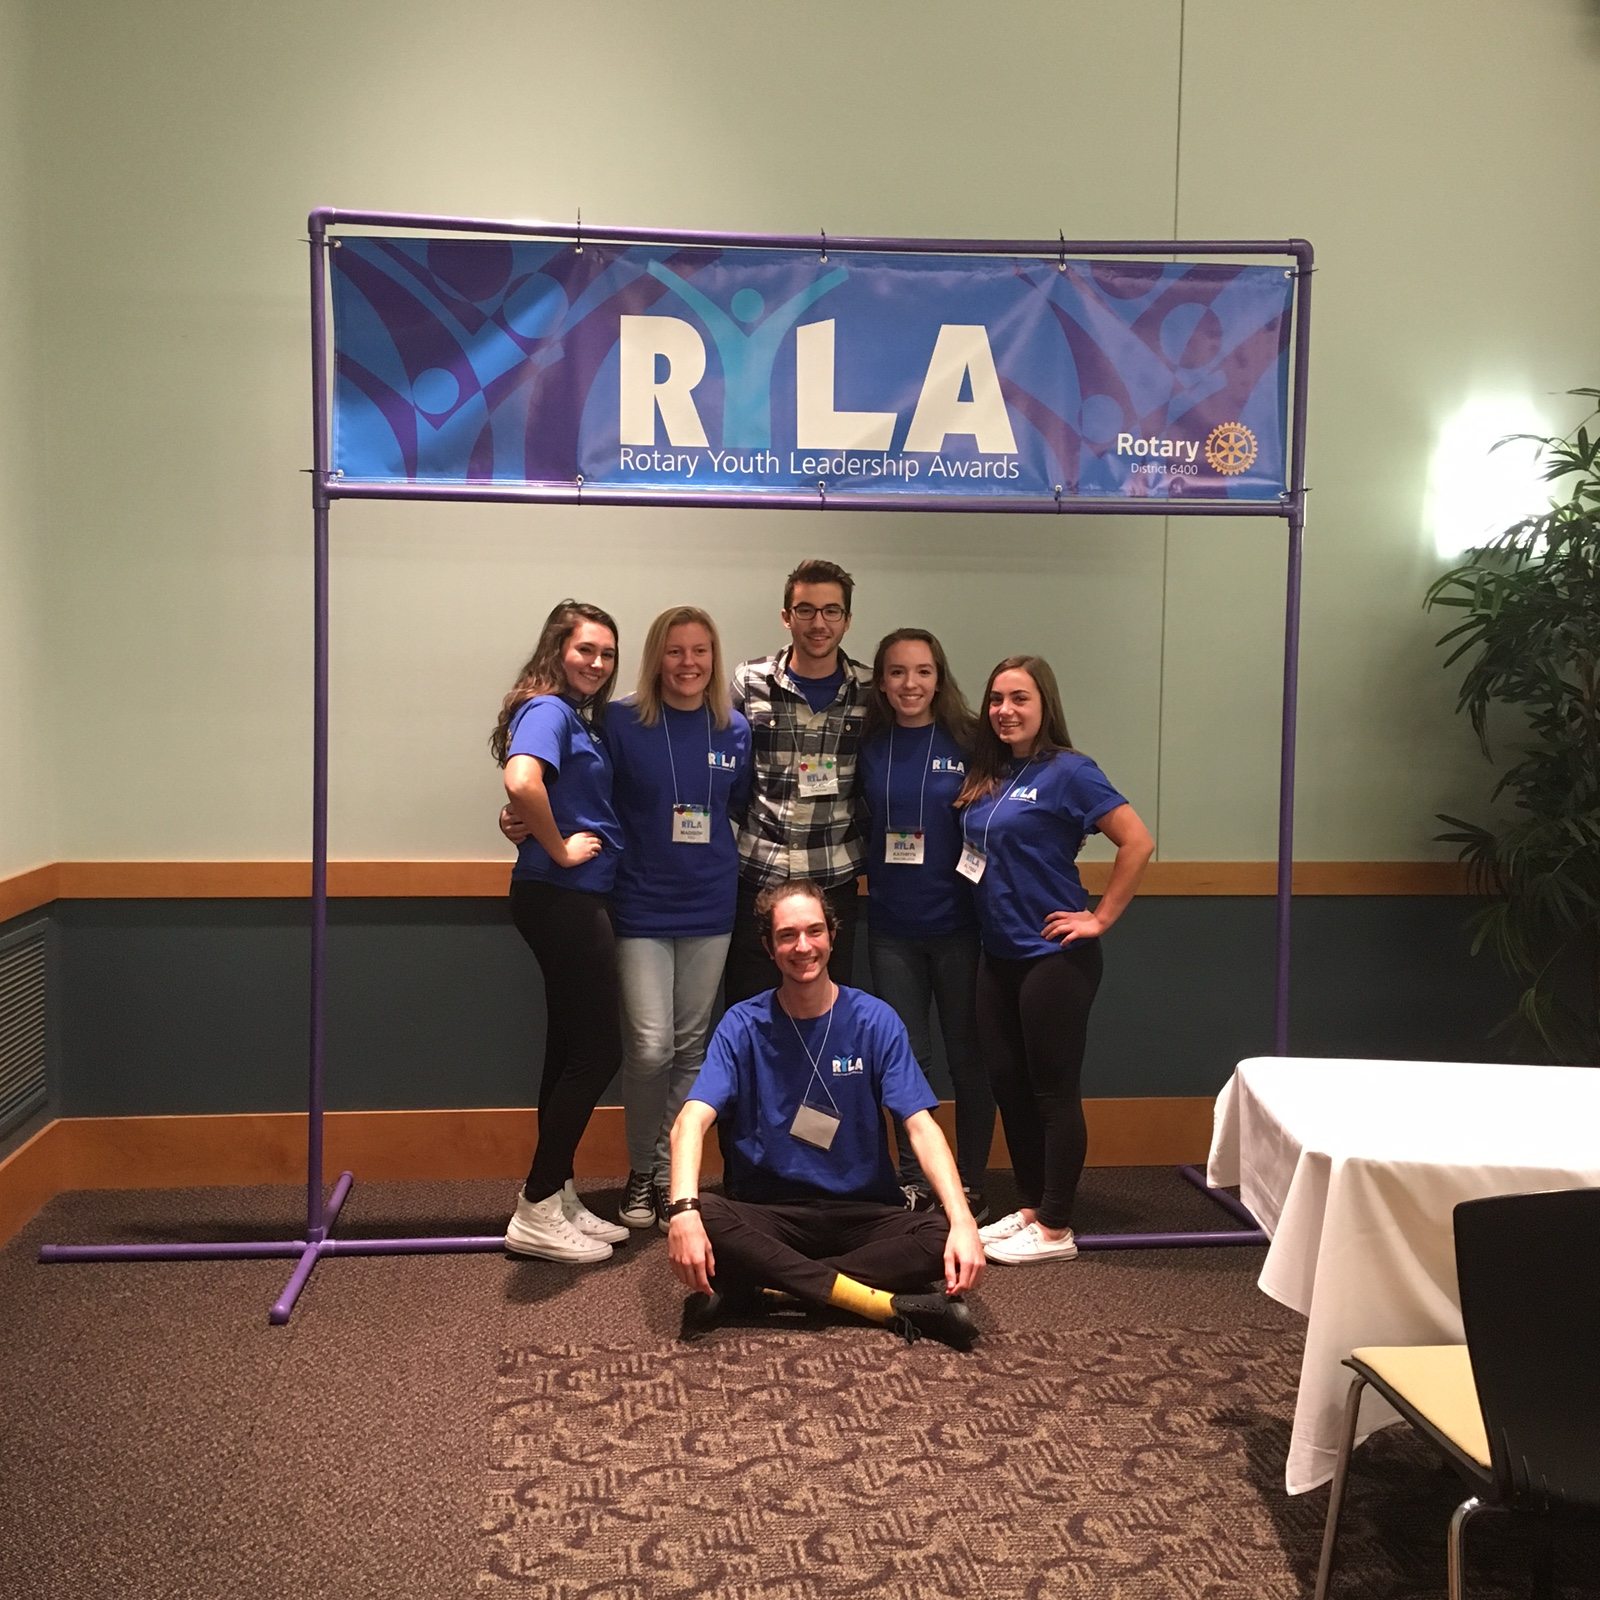 Alyssa Czech '19 with some friends at the Rotary Youth Leadership Awards. Photo by Alyssa Czech '19